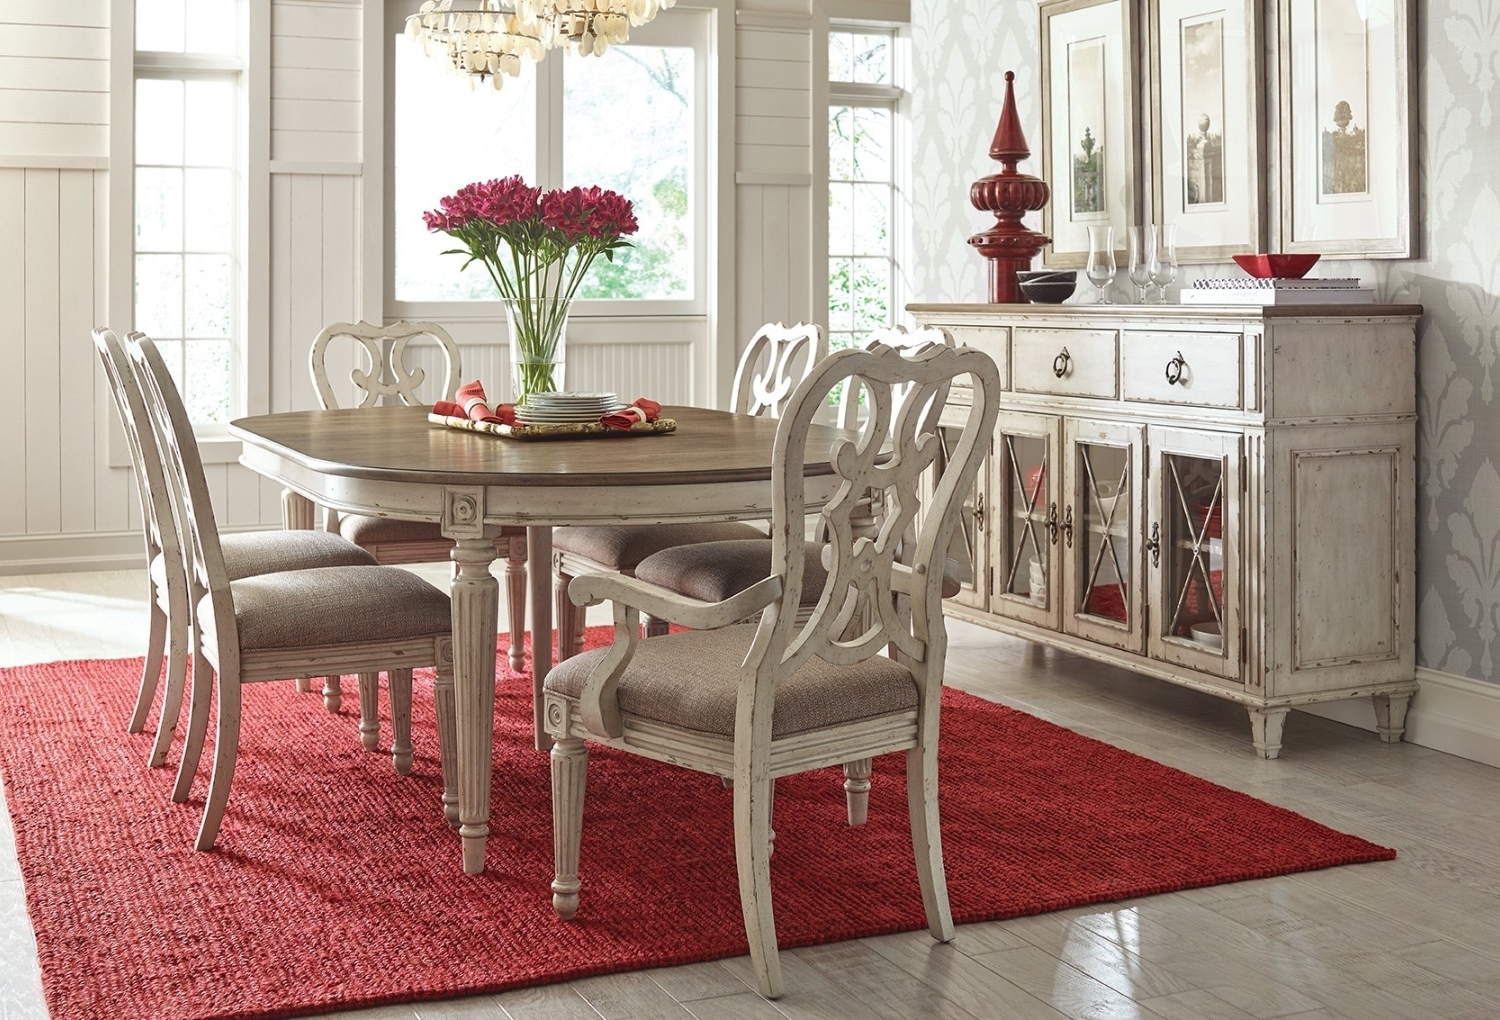 Sofa Chairs With Dining Table Regarding Best And Newest Drew Furniture Of North Carolina (View 16 of 20)